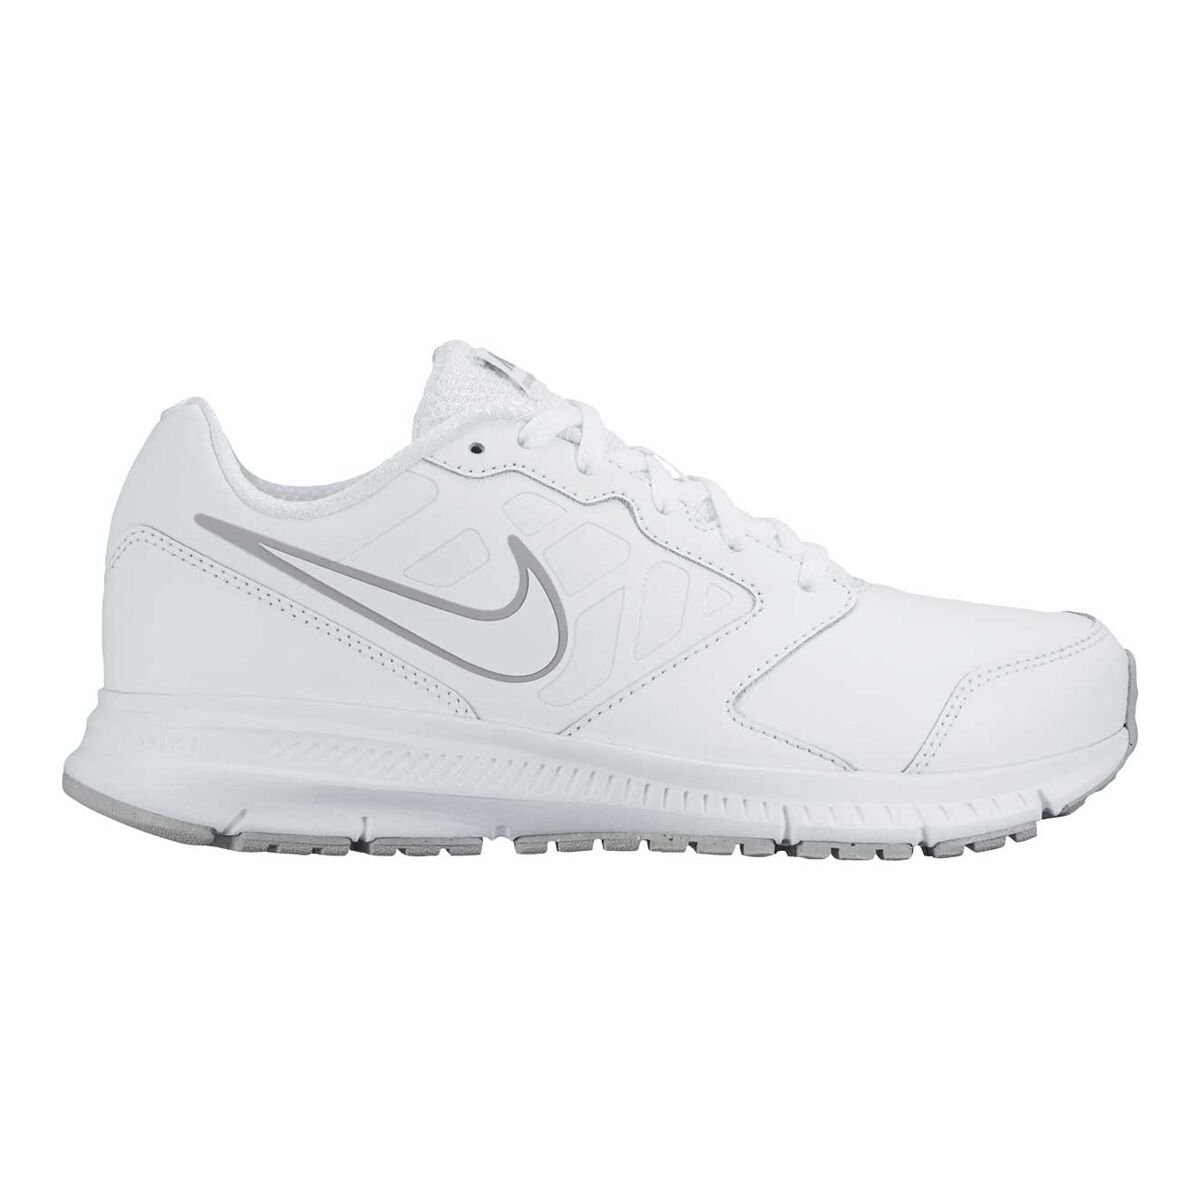 White Running 6 Boys Us 11 Shoes Nike Downshifter Sport Rebel PFqXx4wP